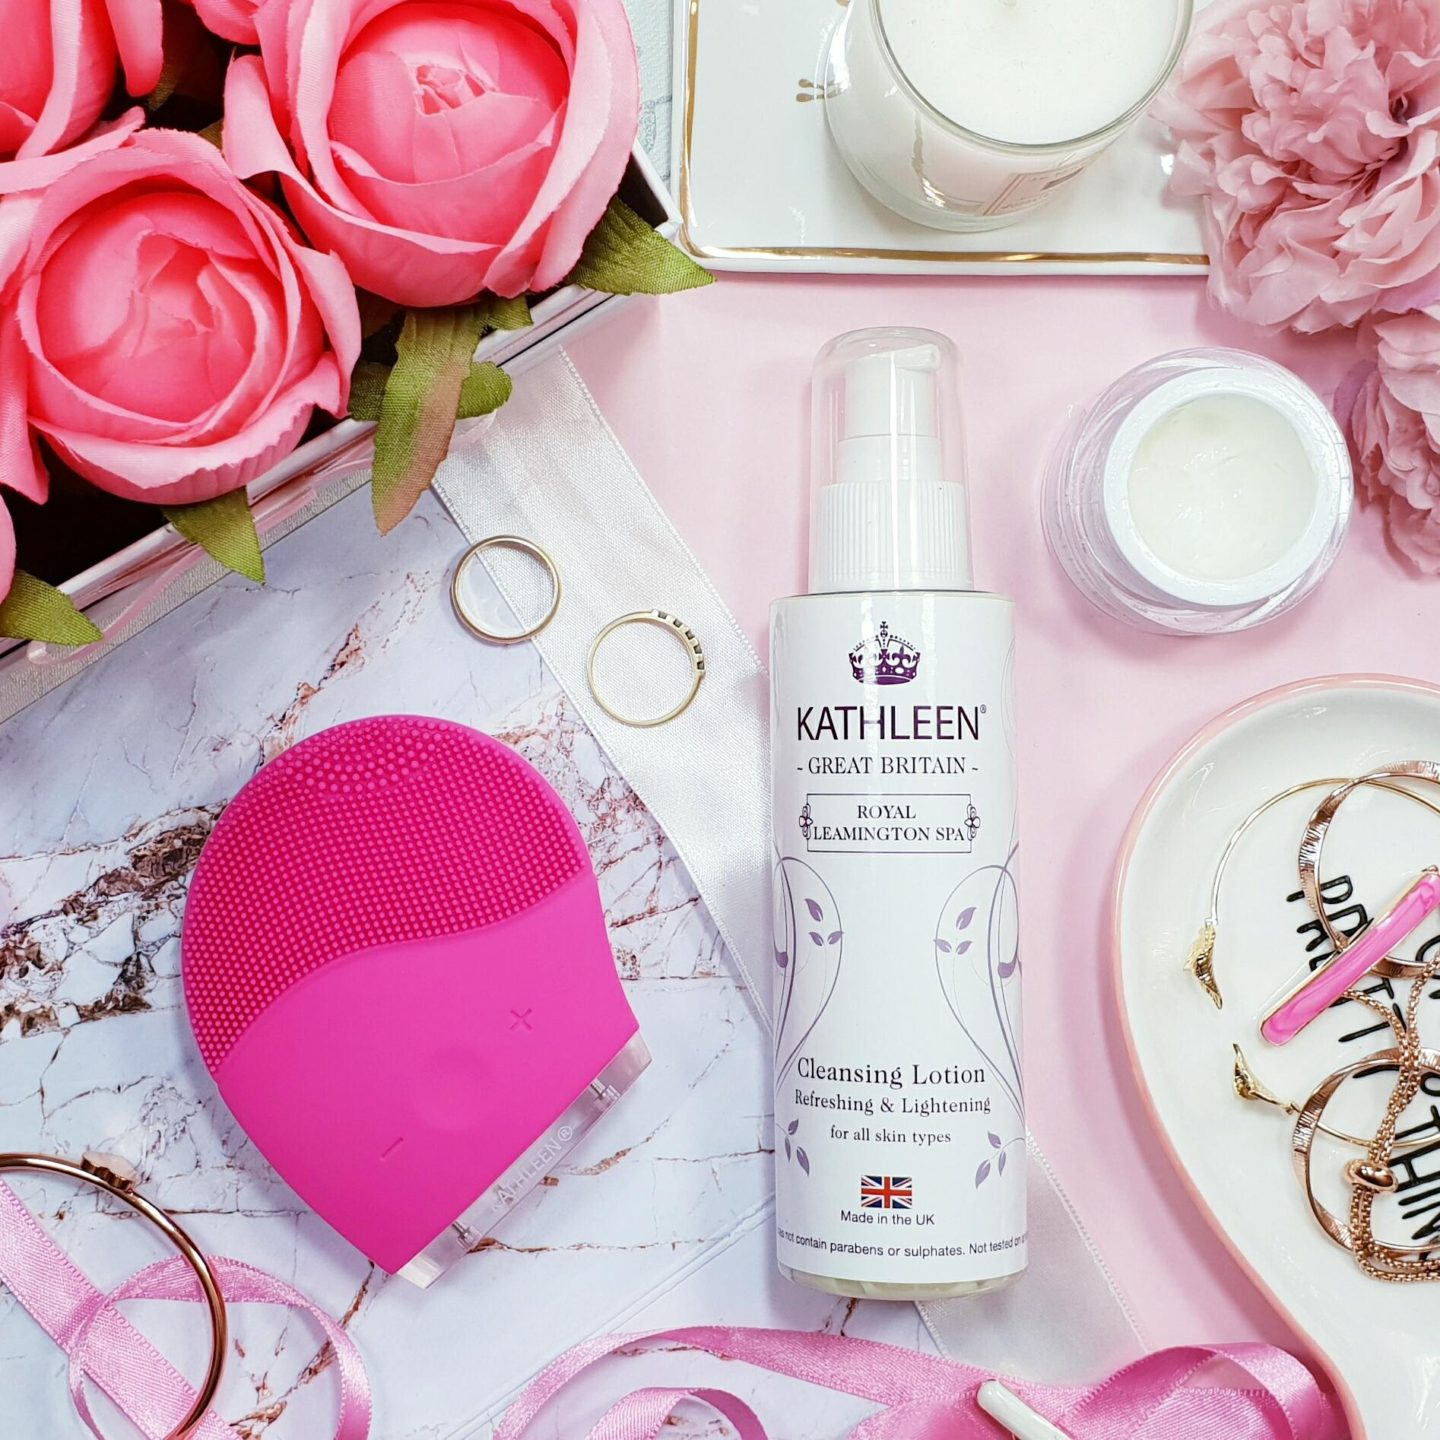 Kathleen Facial Sonic Cleansing Device And Refreshing Cleansing Lotion